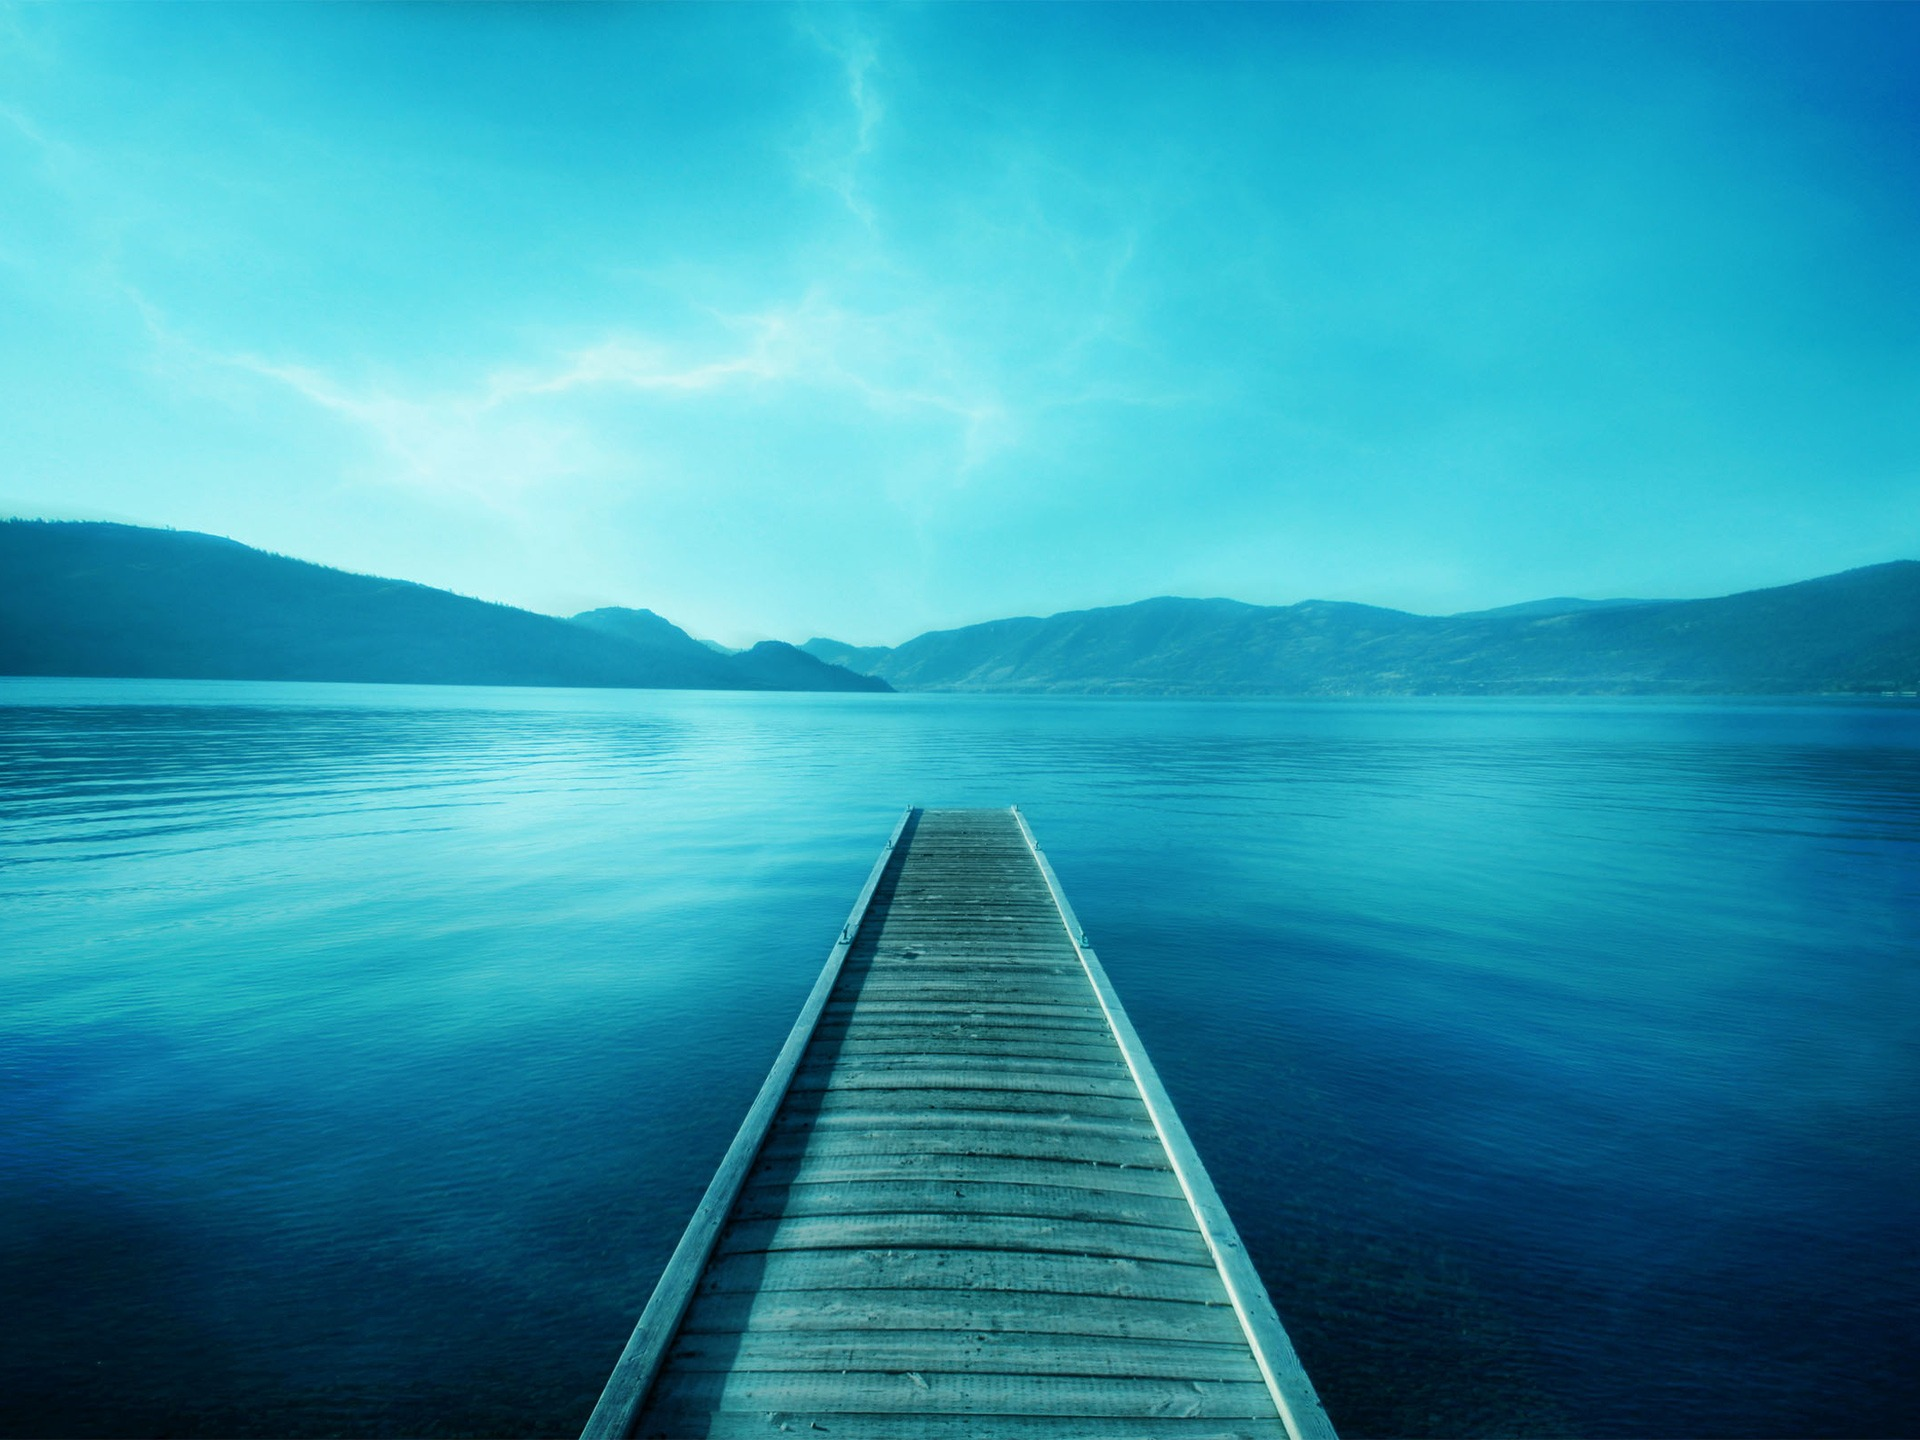 blue wallpaper landscape nature wallpapers in jpg format for free